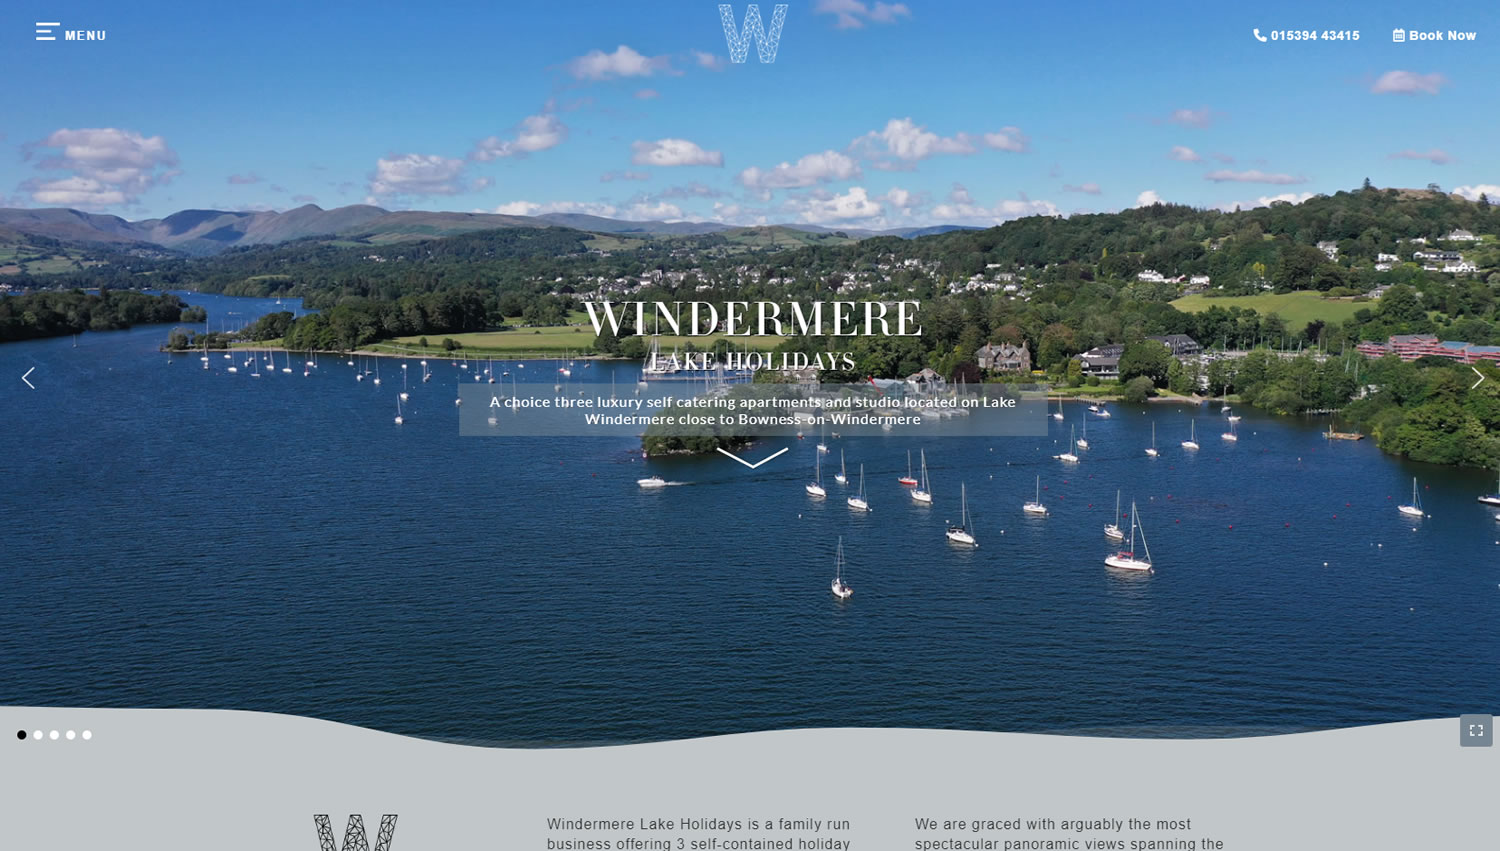 Windermere Lake Holidays